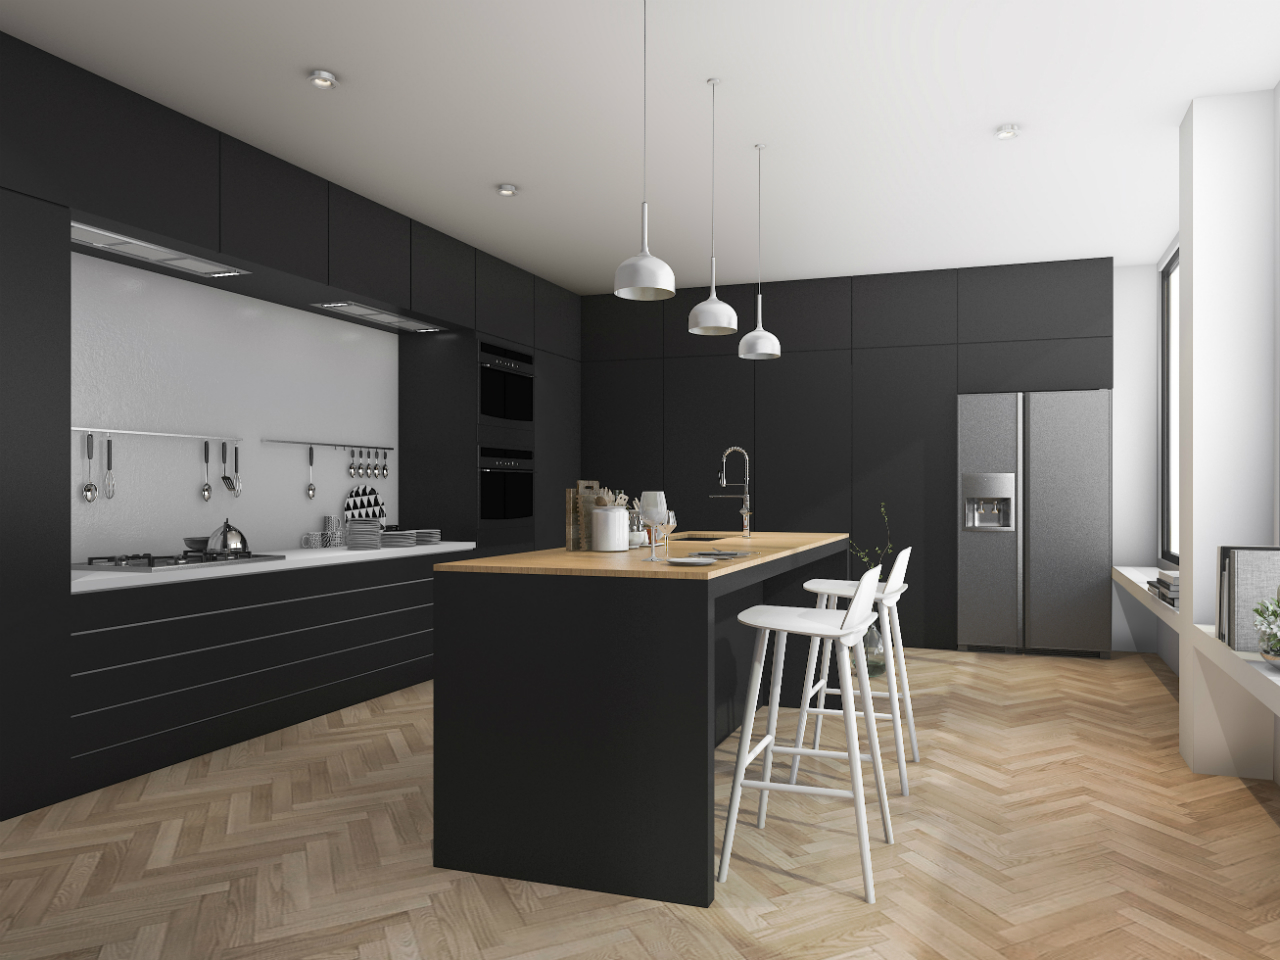 8 space-enhancing minimalist kitchen design tips